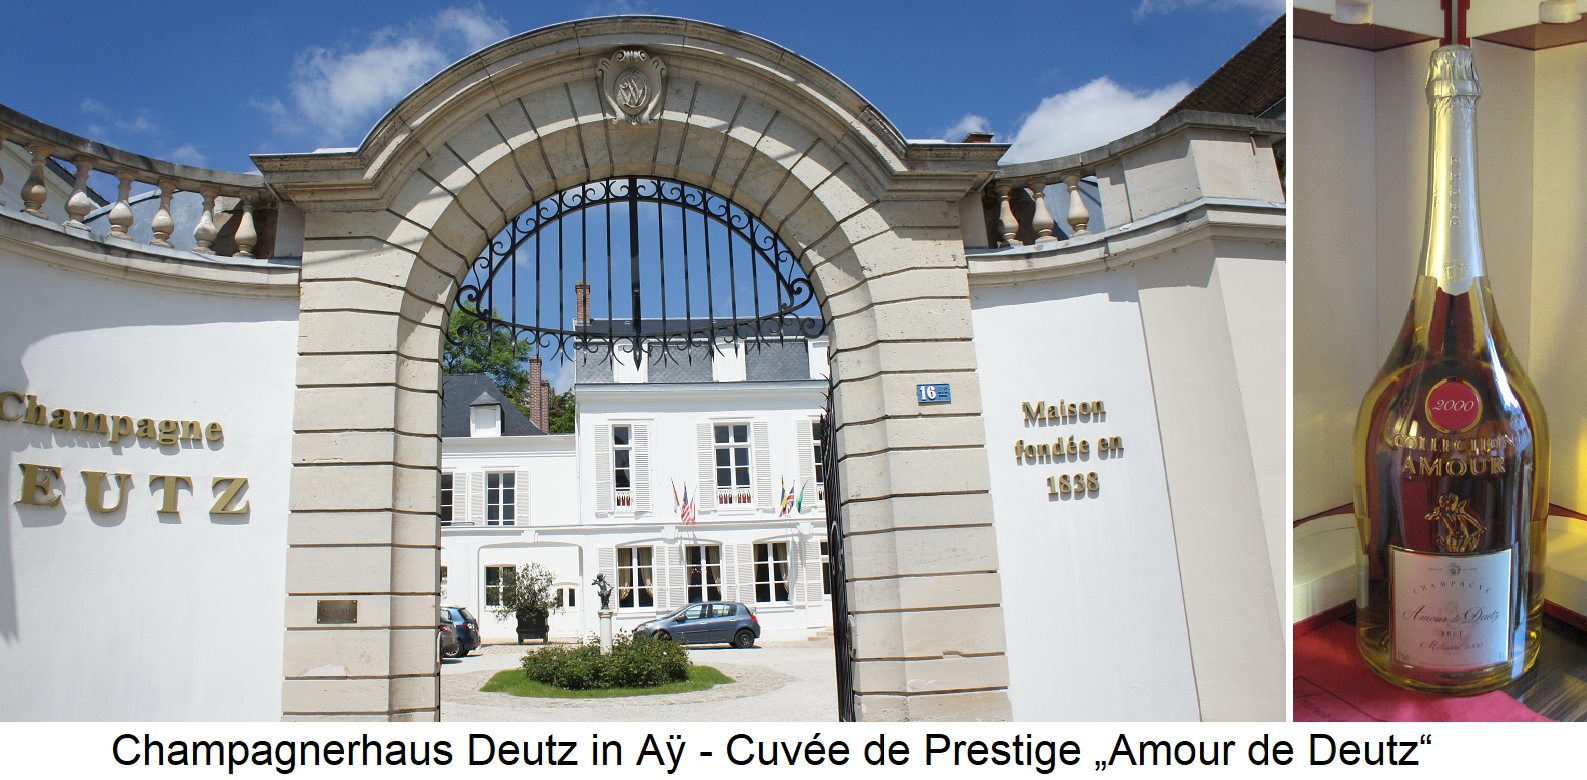 Deutz - Headquarters in Ay and Cuvée de Prestige